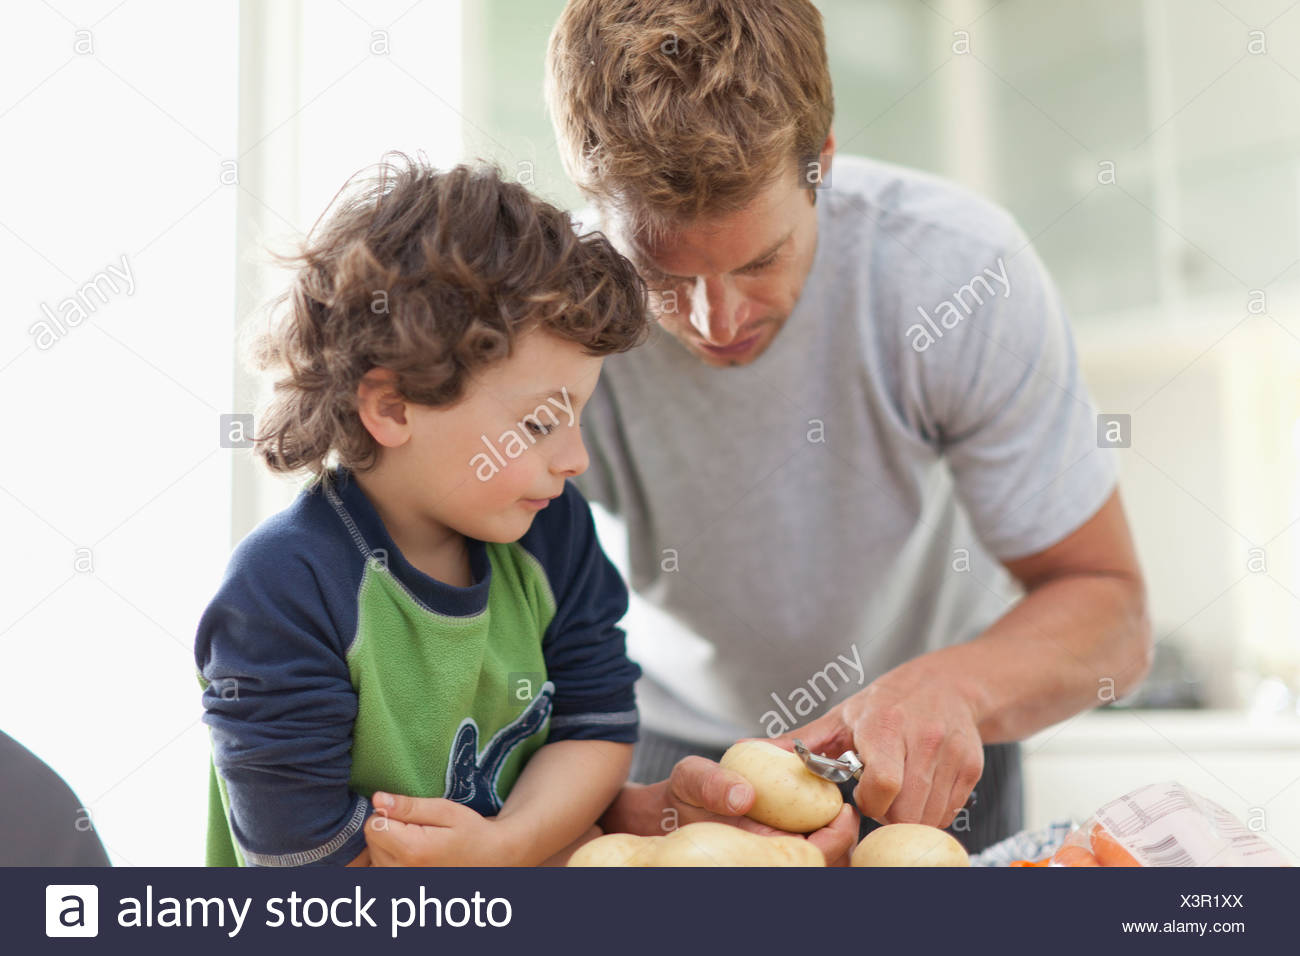 Father helping son peel potatoes - Stock Image